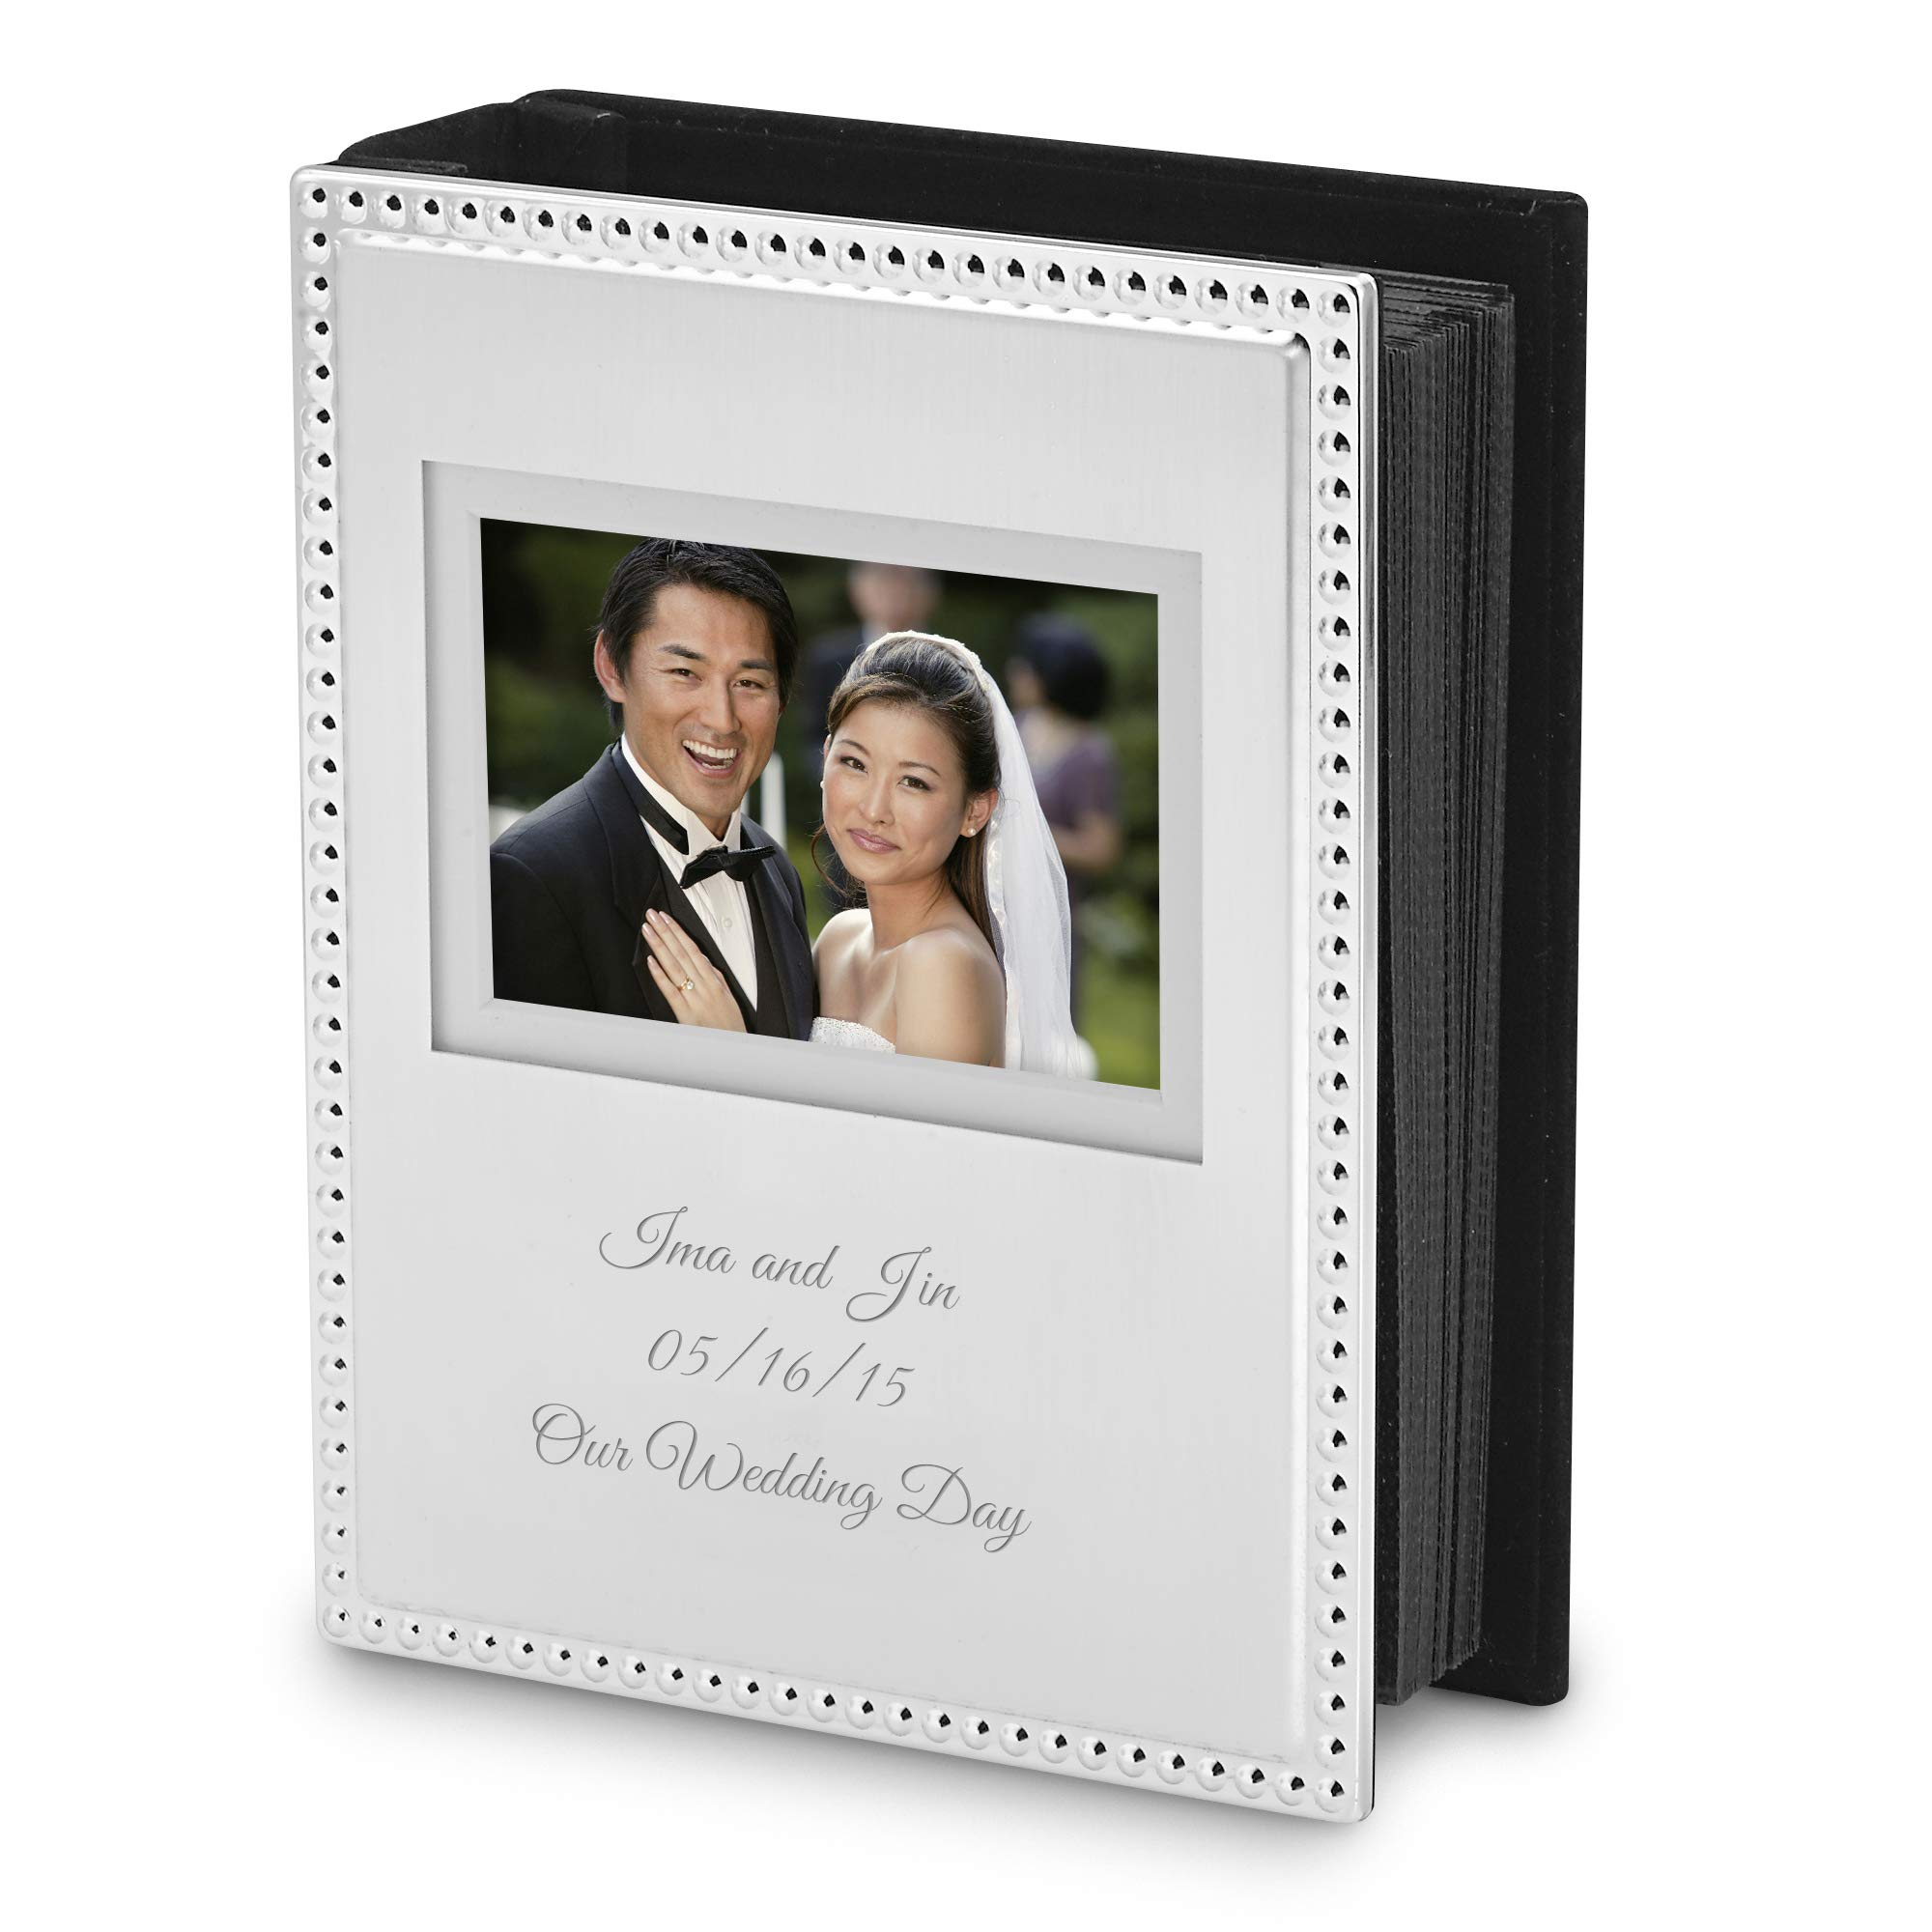 Things Remembered Personalized Beaded 4x6 Album with Engraving Included by Things Remembered